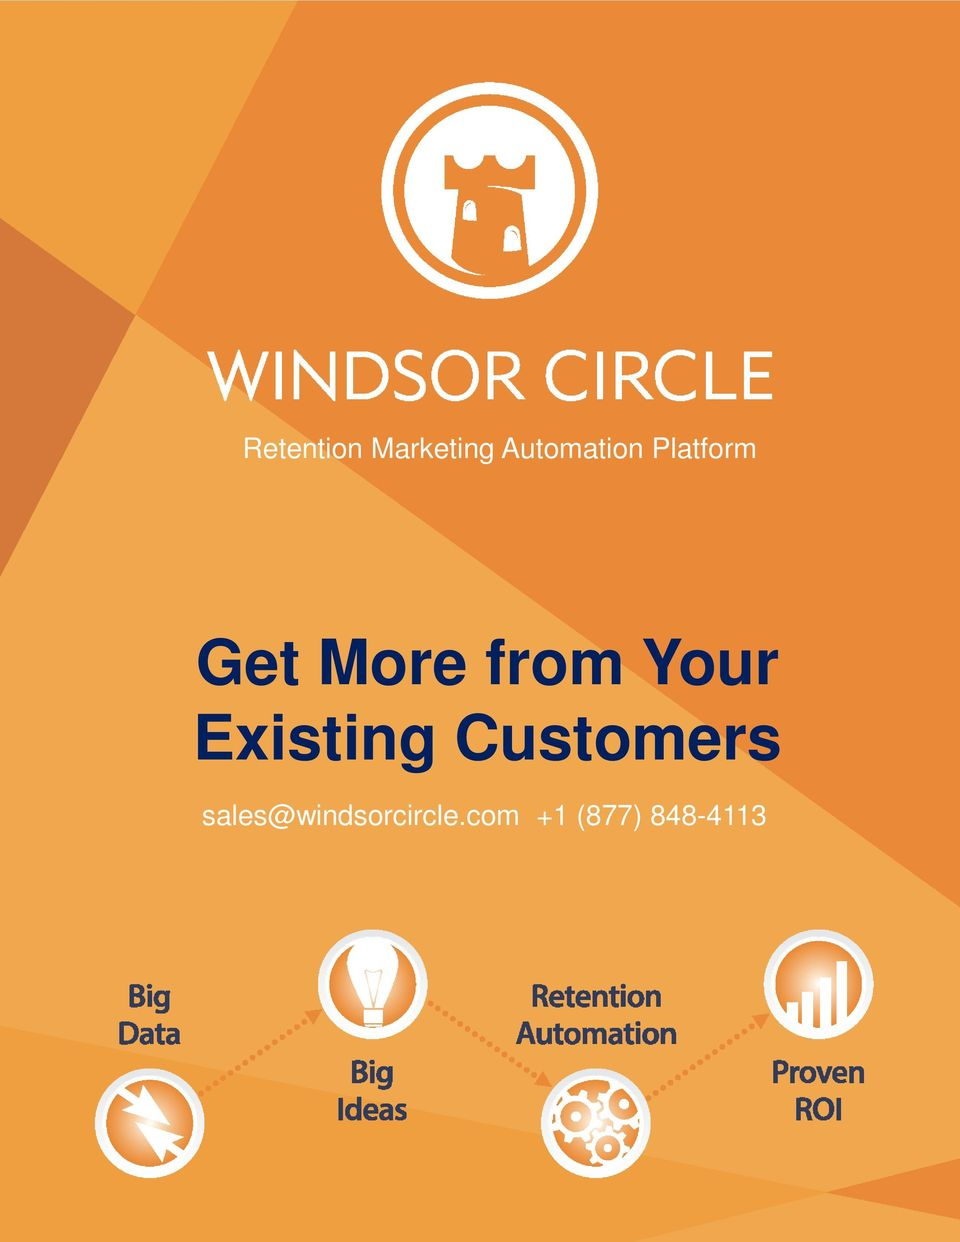 from Your Existing Customers